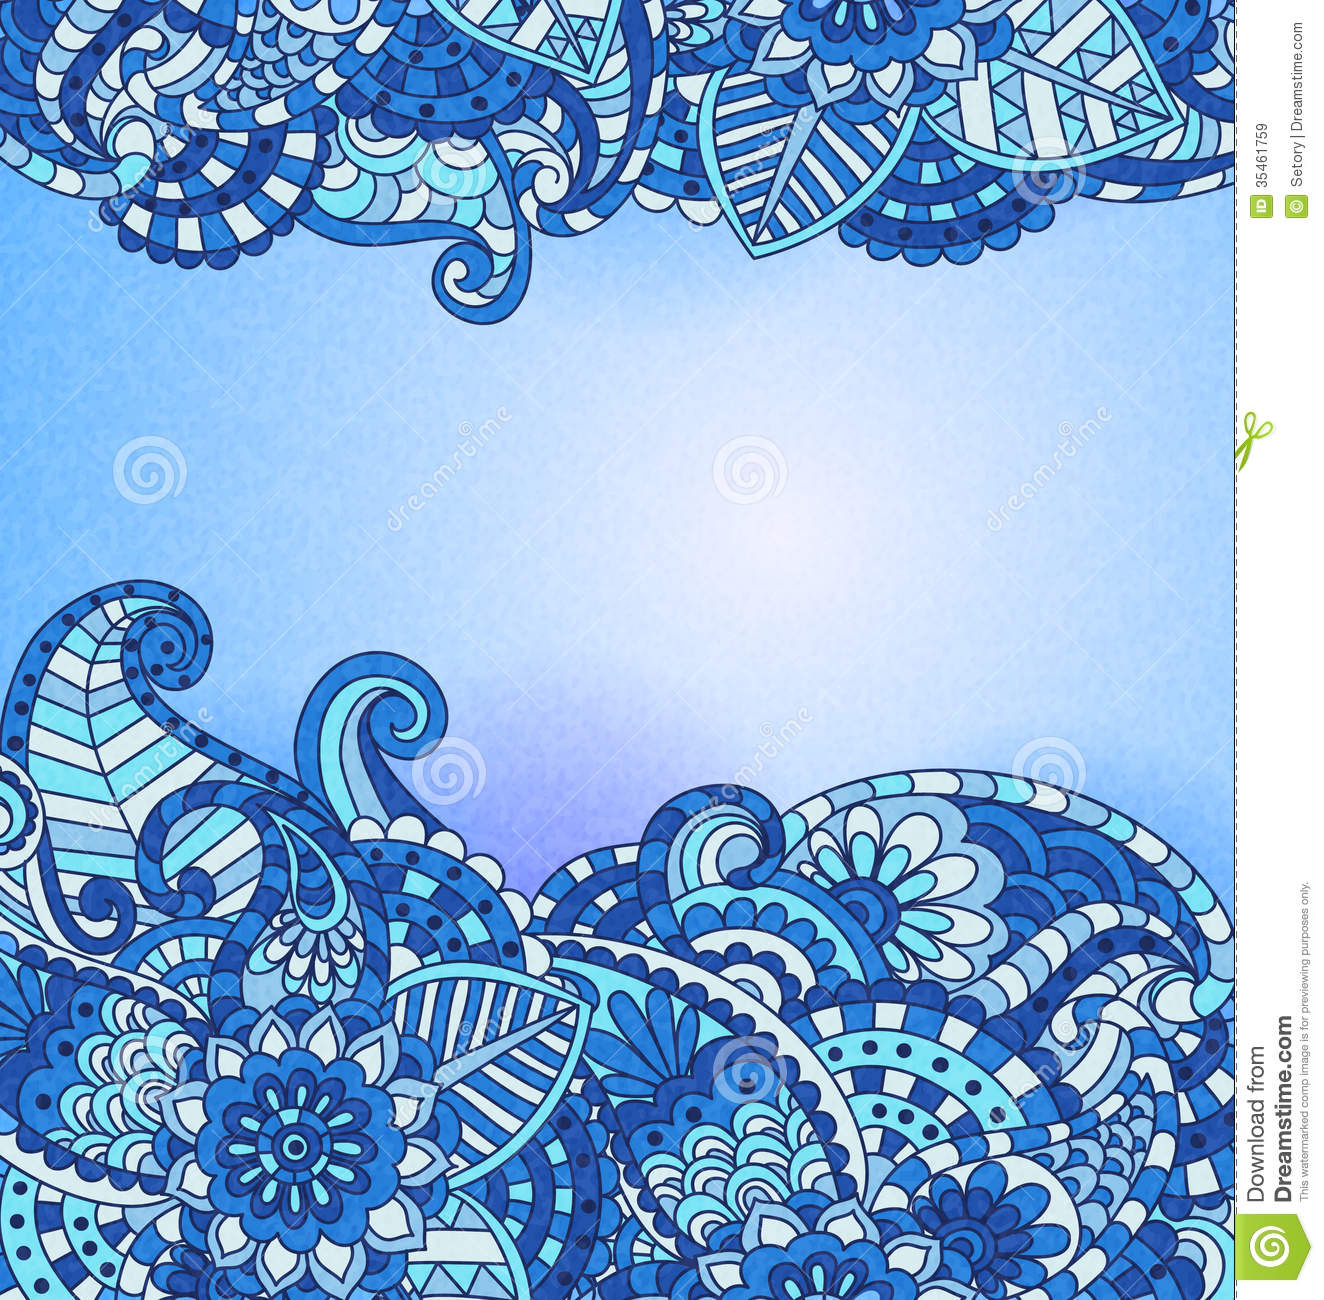 Vintage pattern stock vector. Image of doodle, card ...